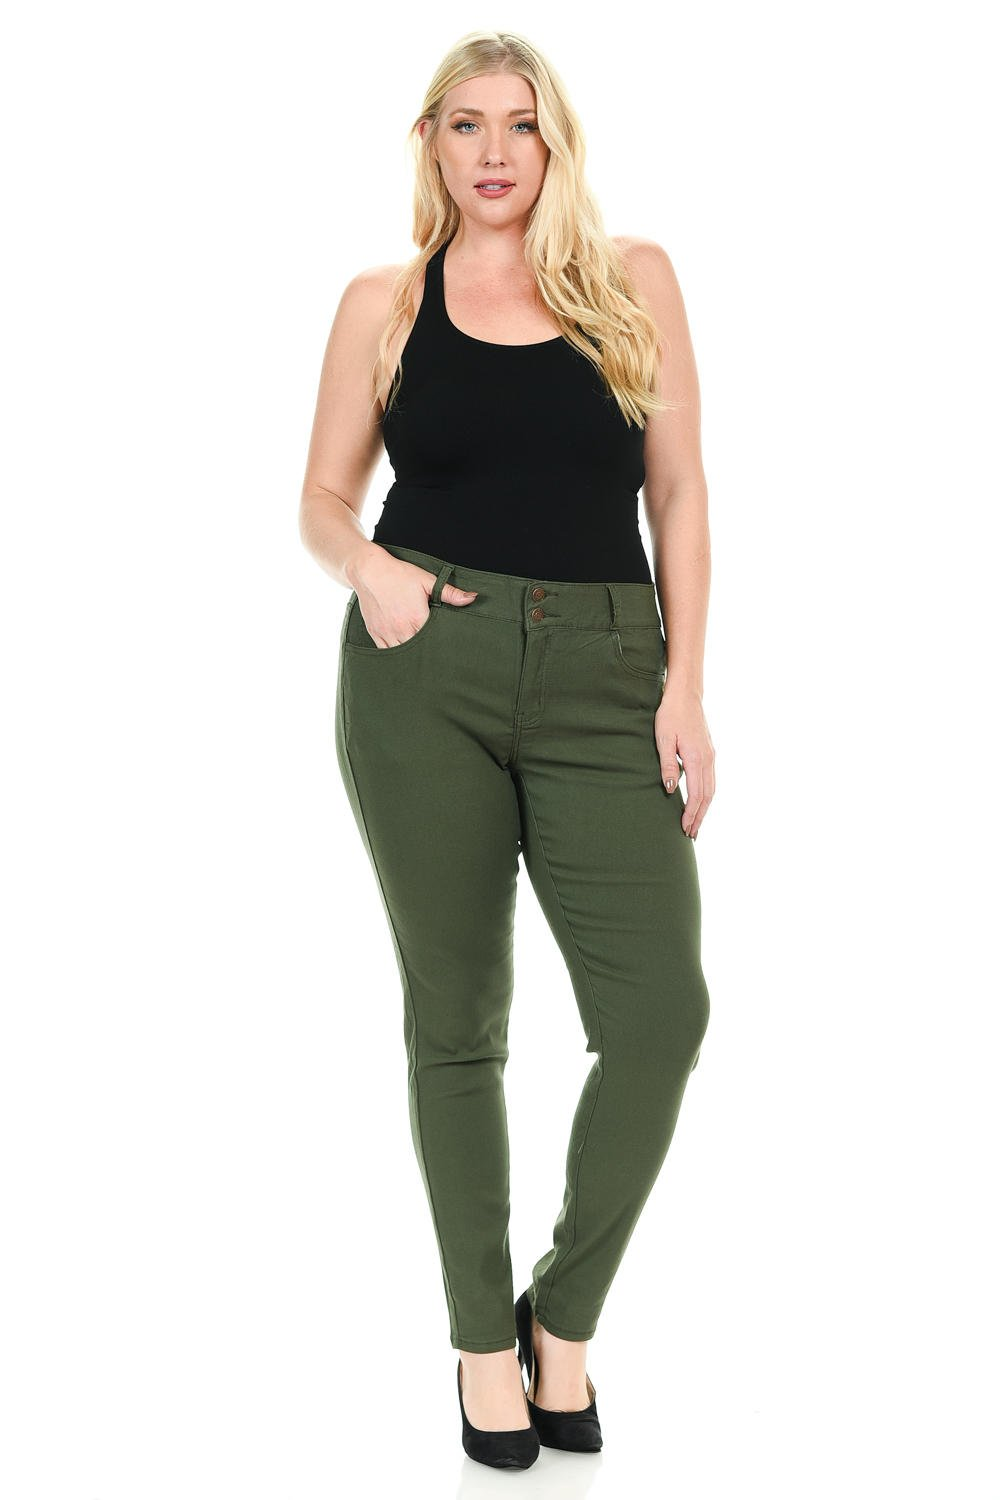 926 Women's Jeans - Plus Size - High Waist - Push Up - Style W1506 - Olive - Size 16